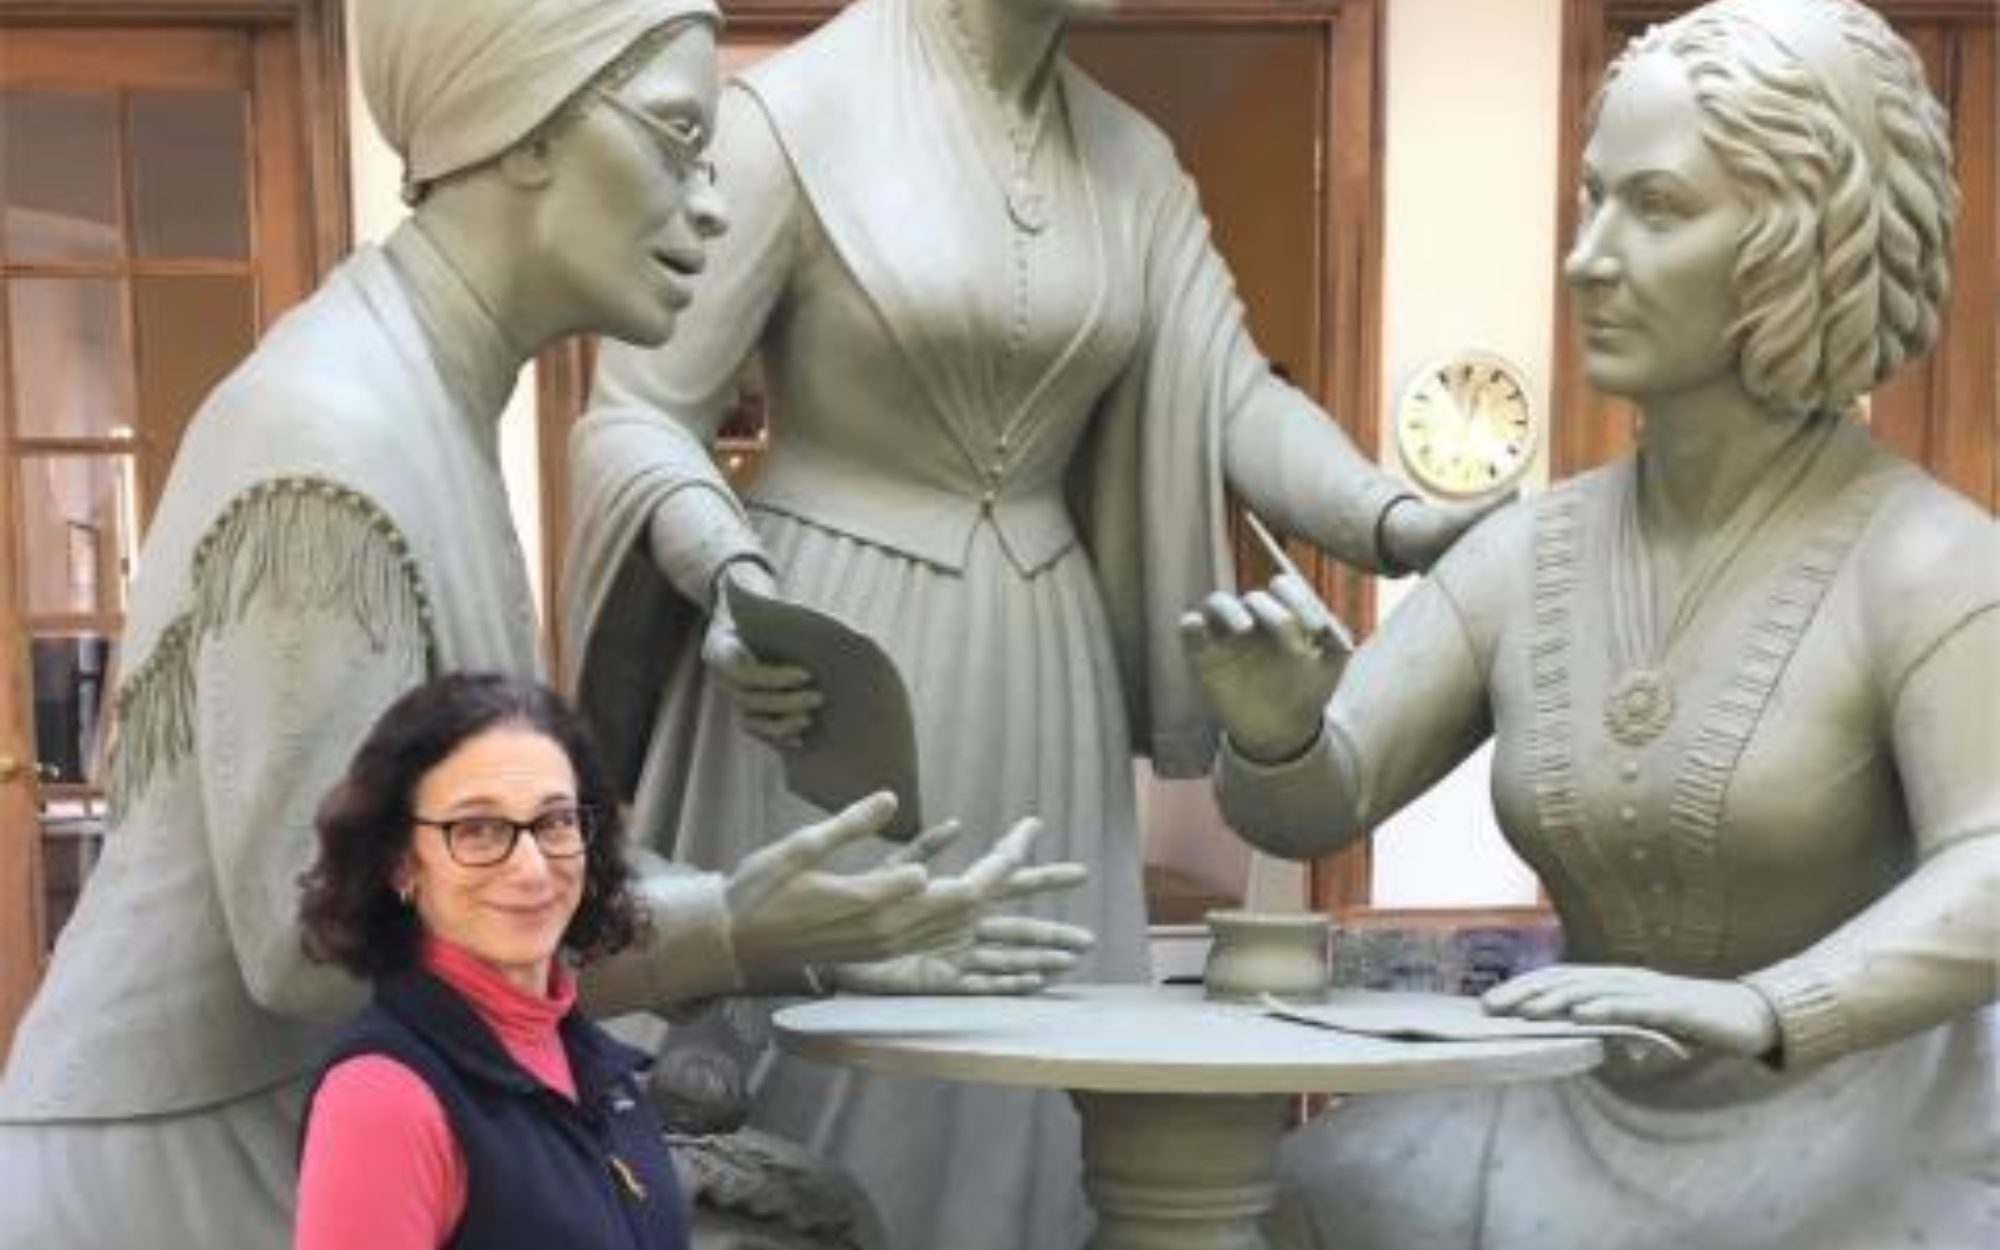 A woman standing in front of a large scale sculpture of three women.